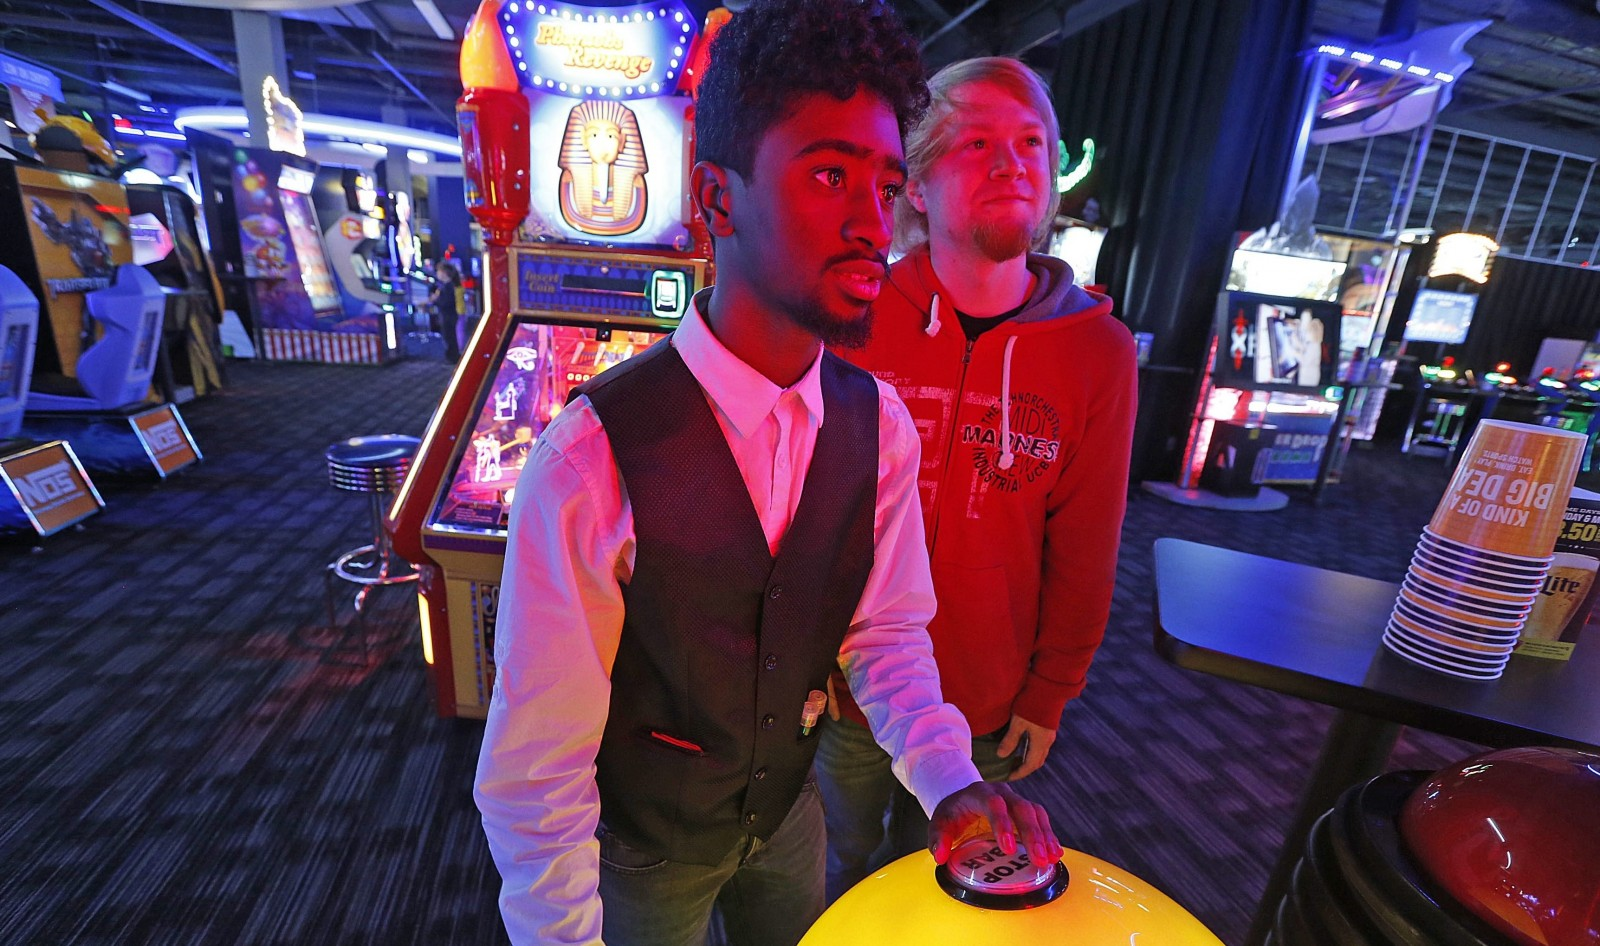 Spend Super Bowl Sunday at Dave & Buster's in the Walden Galleria where you can play games, have a drink and grab some food. College buddies Jajuan Reeves, front and Dalton Robinson, are pictured playing a reflex challenging game. (Robert Kirkham/Buffalo News file photo)